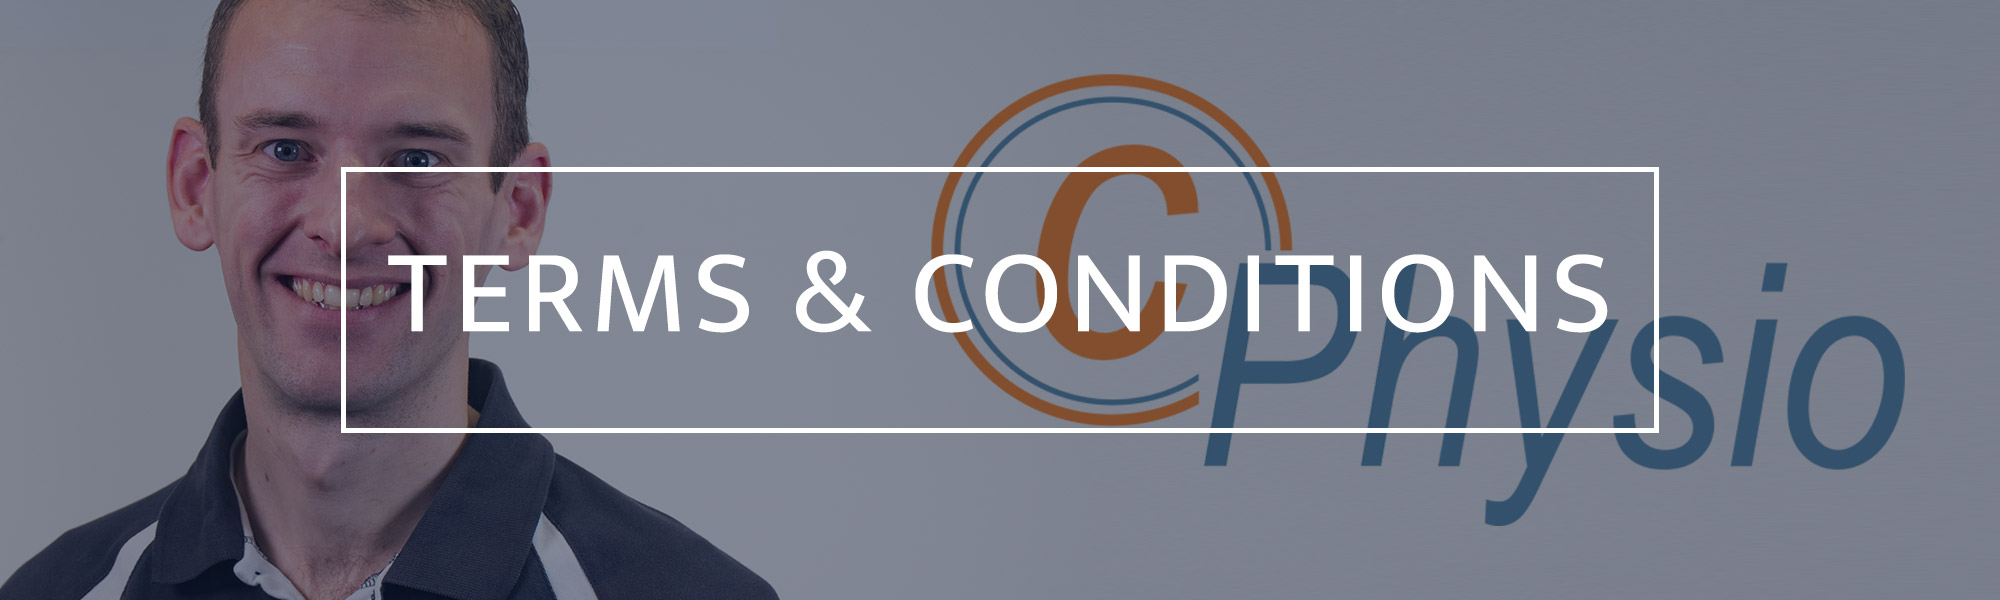 Terms and Conditions Header 2